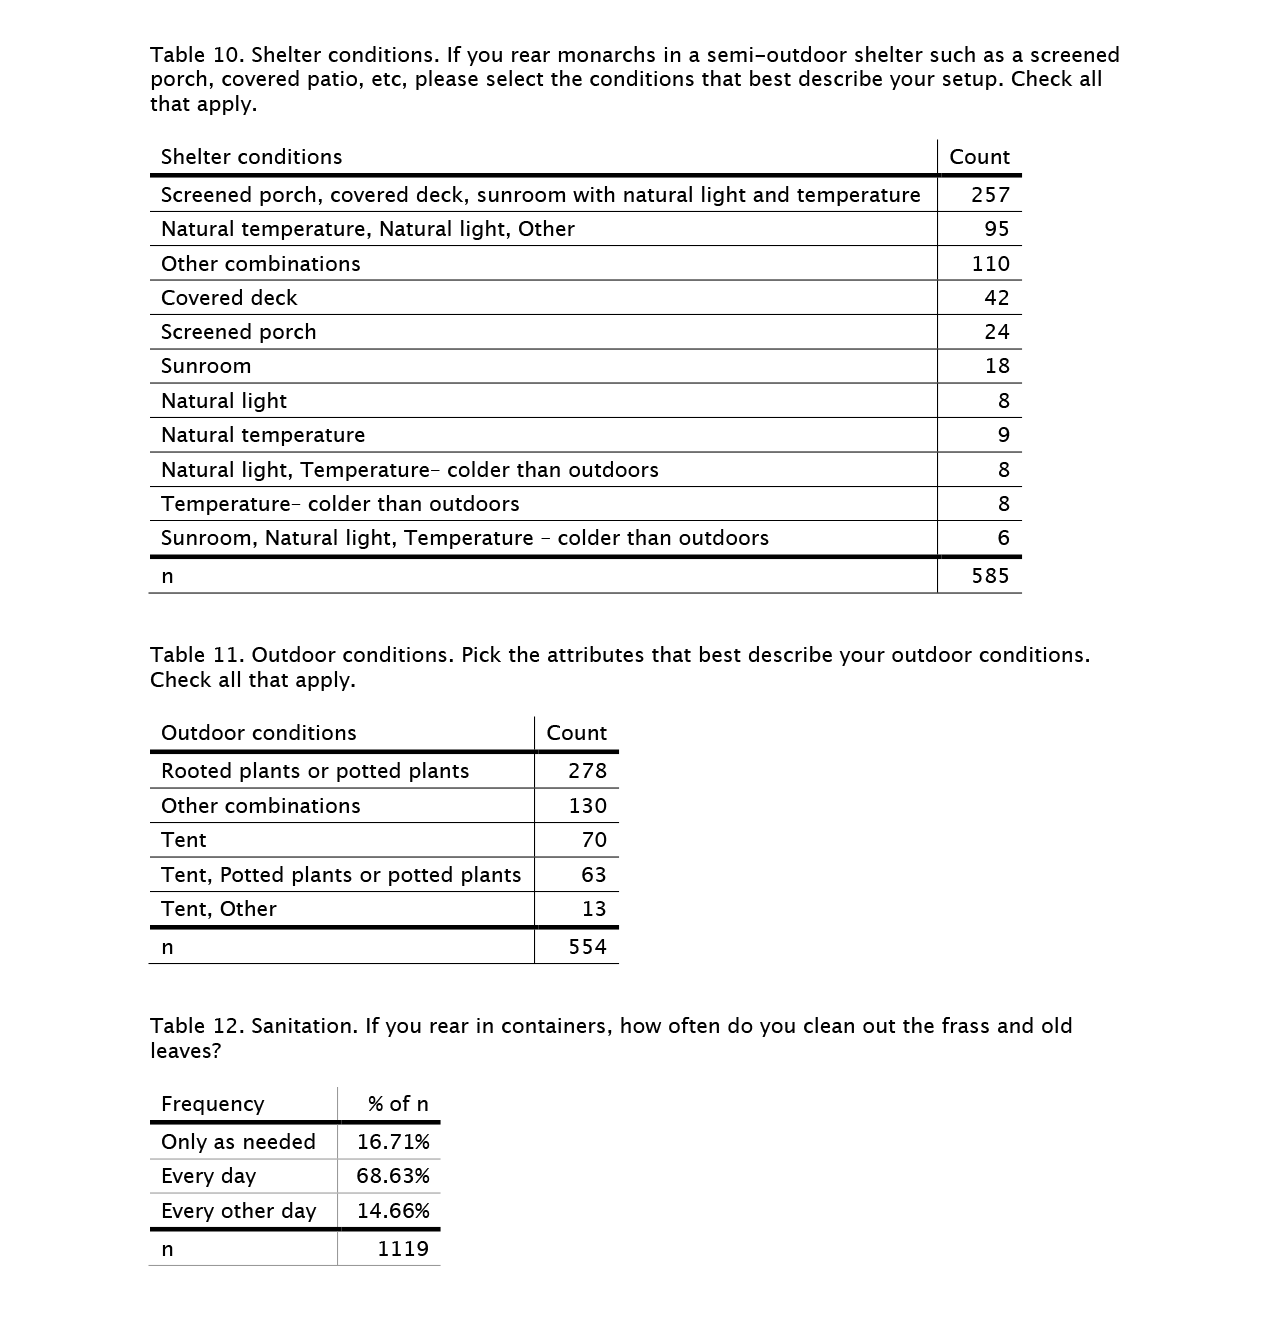 rearing-survey-tables-10-12